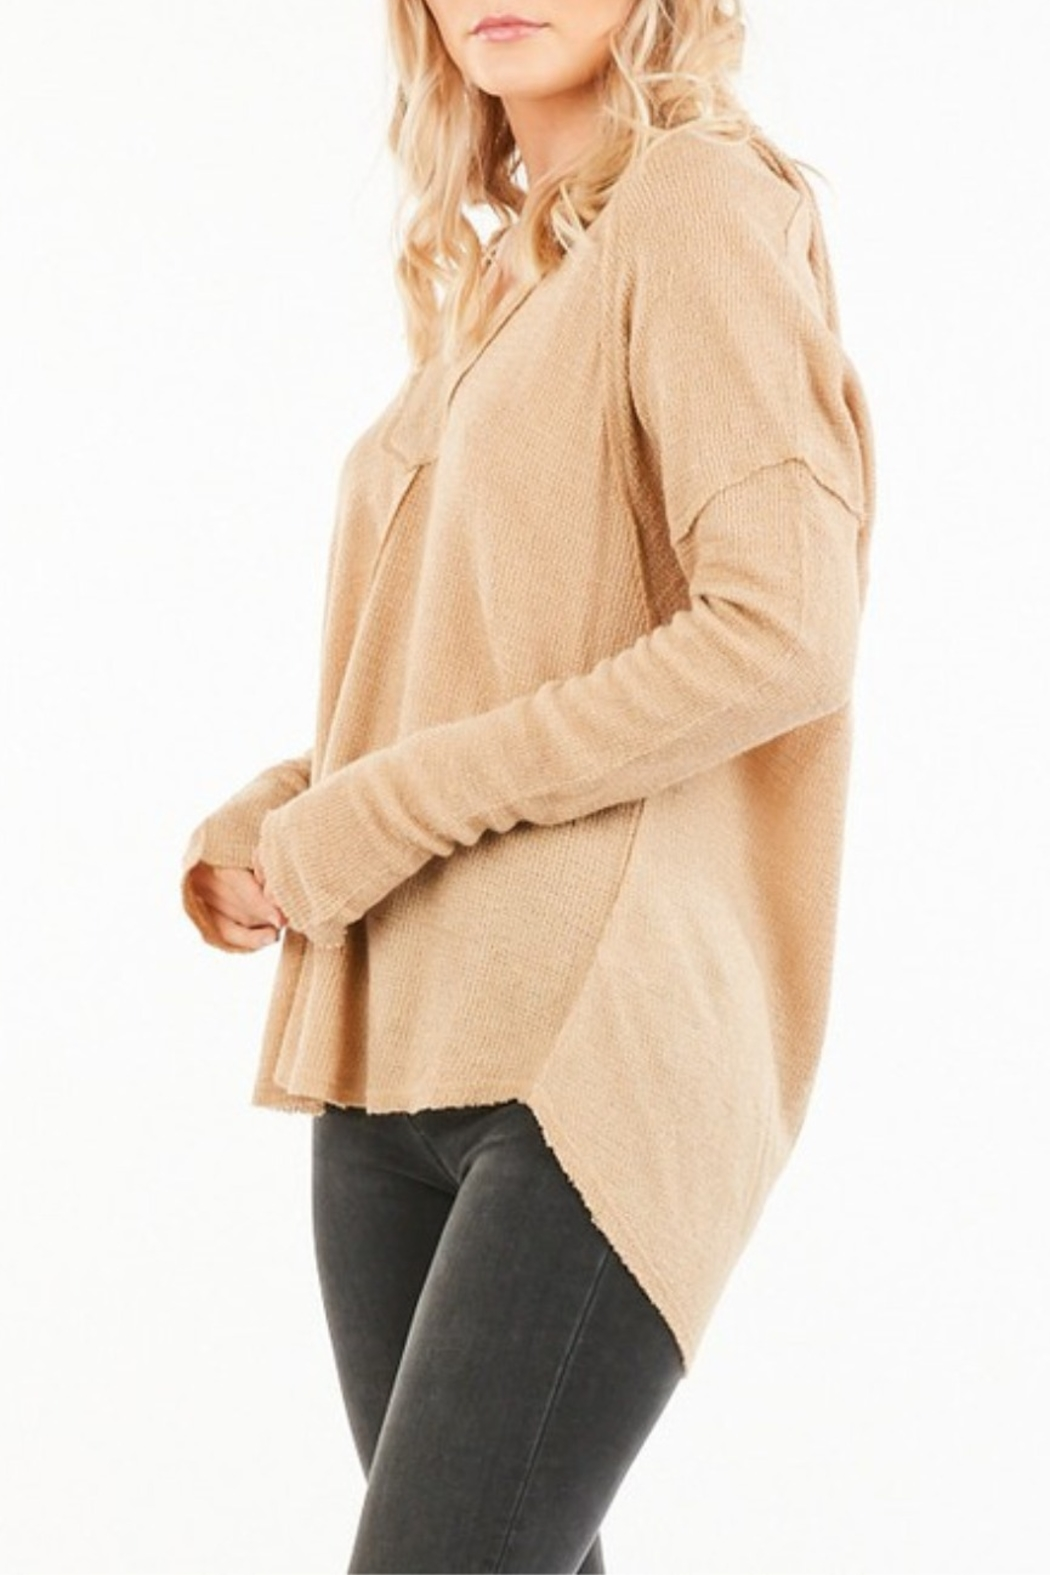 Very J Vee Waffle Knit Top - Side Cropped Image